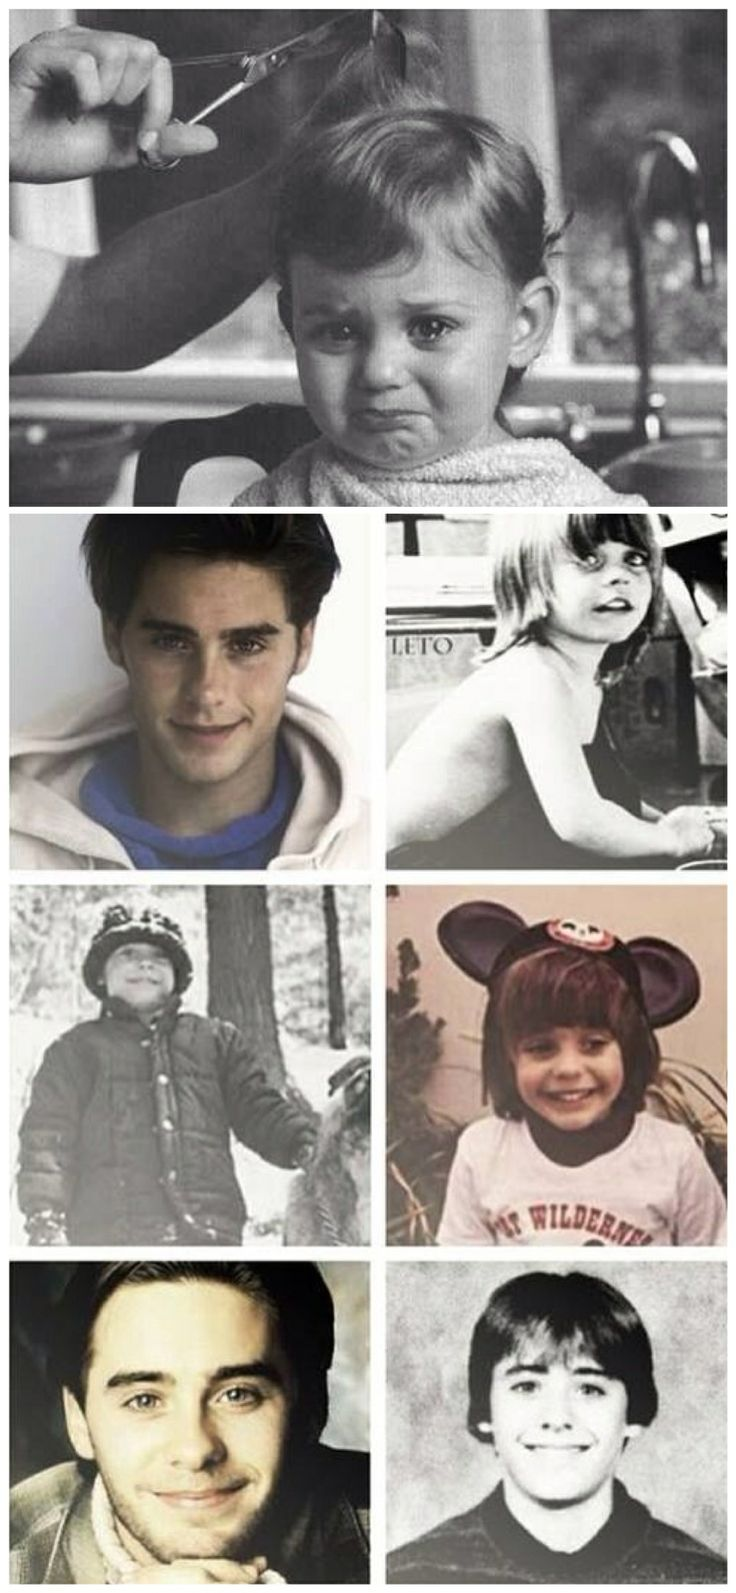 Holy fucking shit, this just melts my heart. What a treasure! Jeez, Jared Leto was always so godamn CUTE!  ♥♥